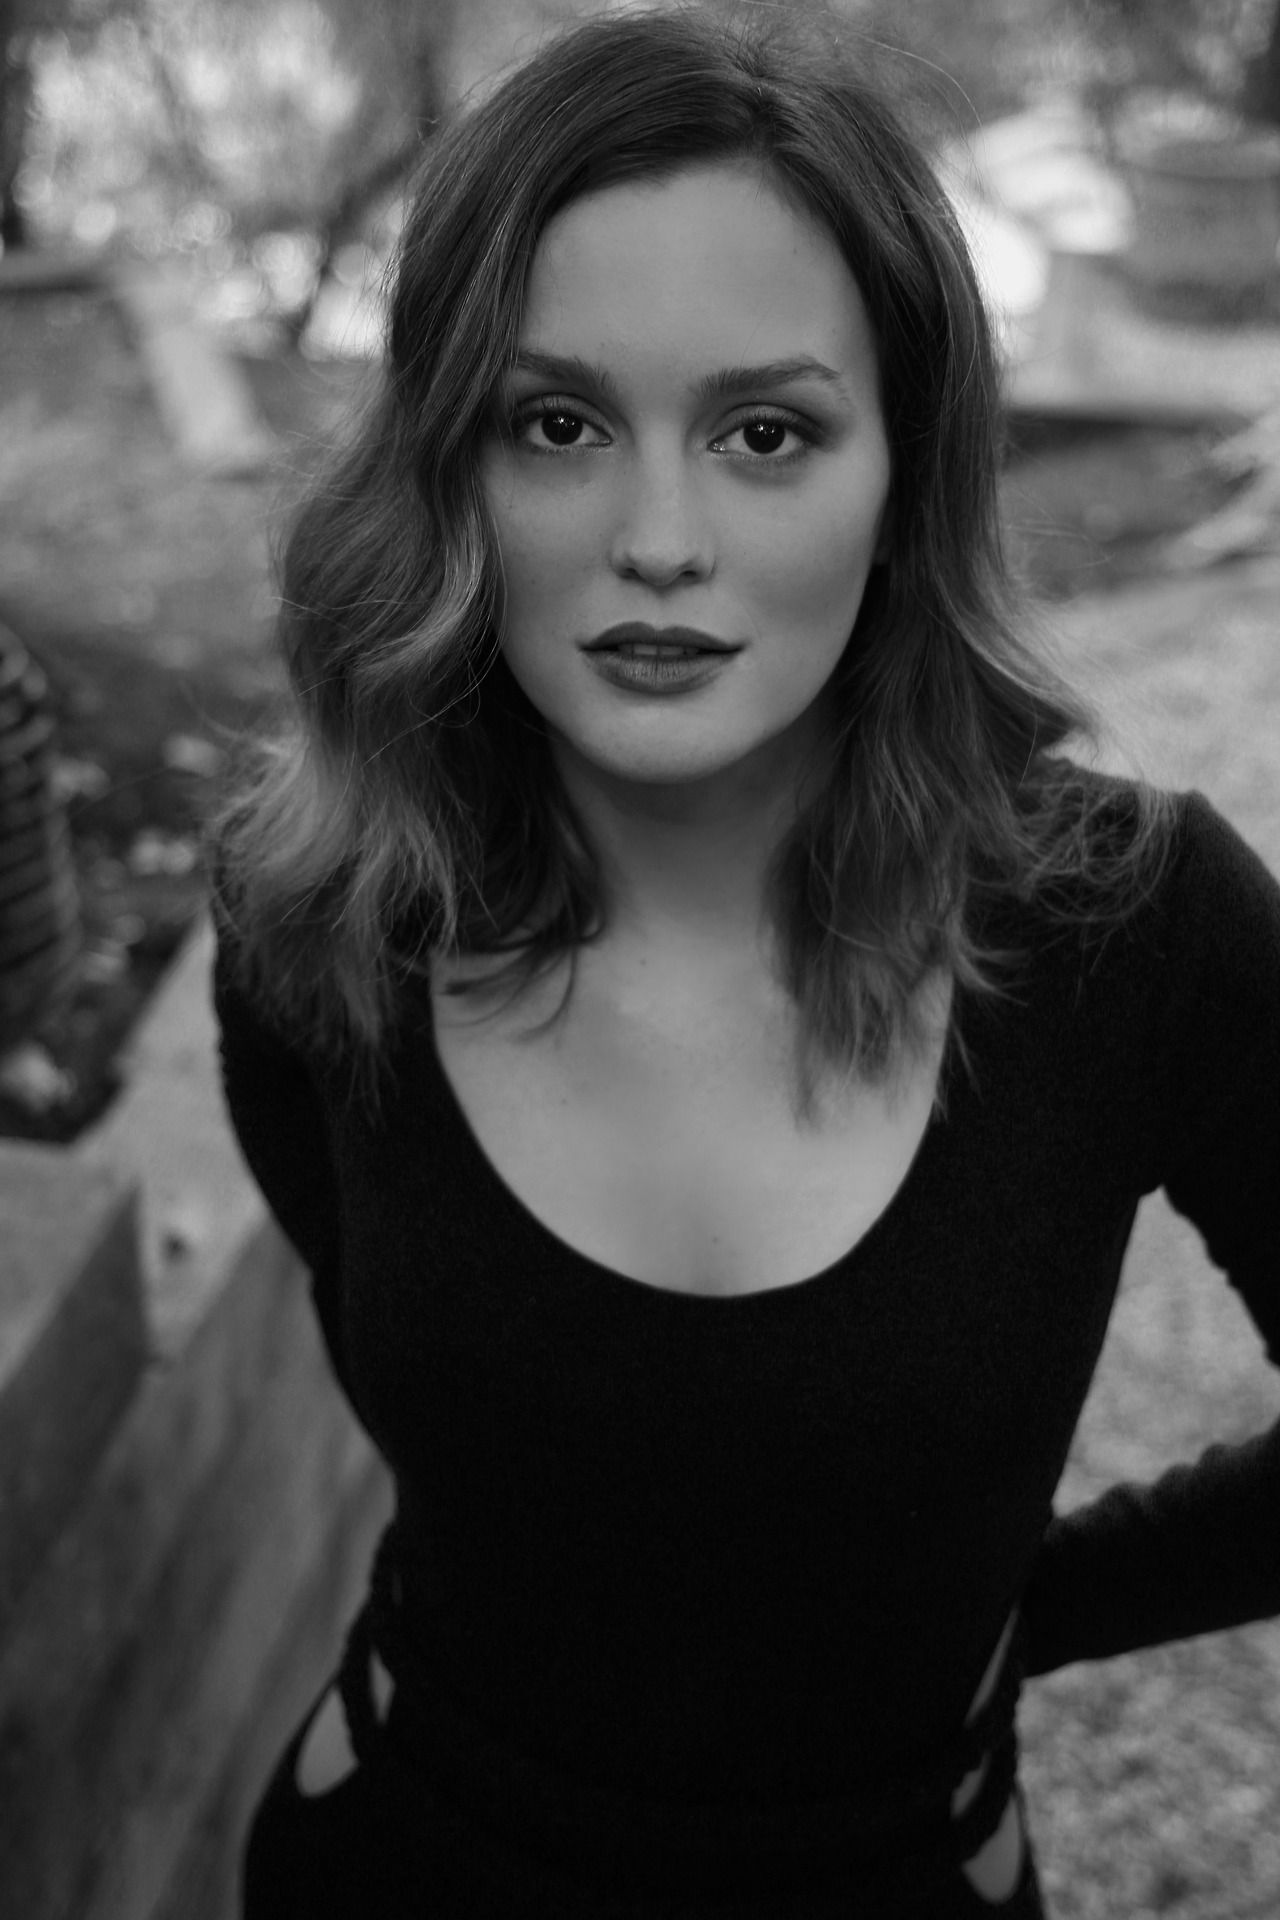 Leighton Meester – Photoshoot by Davida Williams (2014)